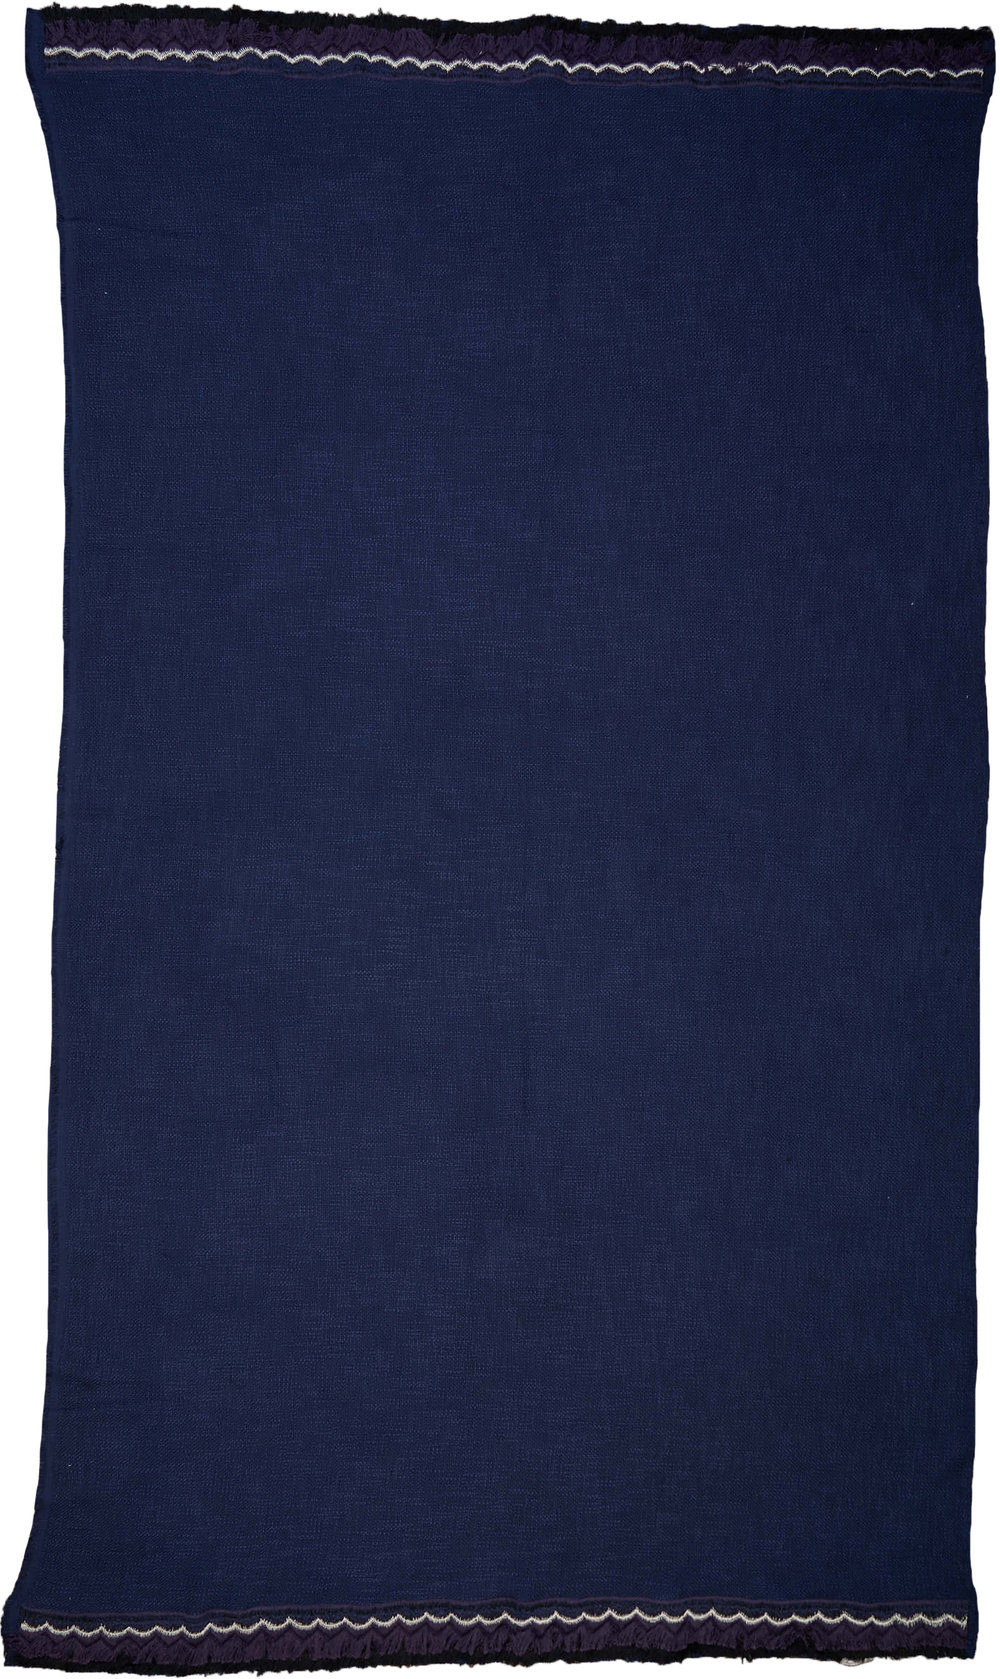 OMERO THROW I NAVY